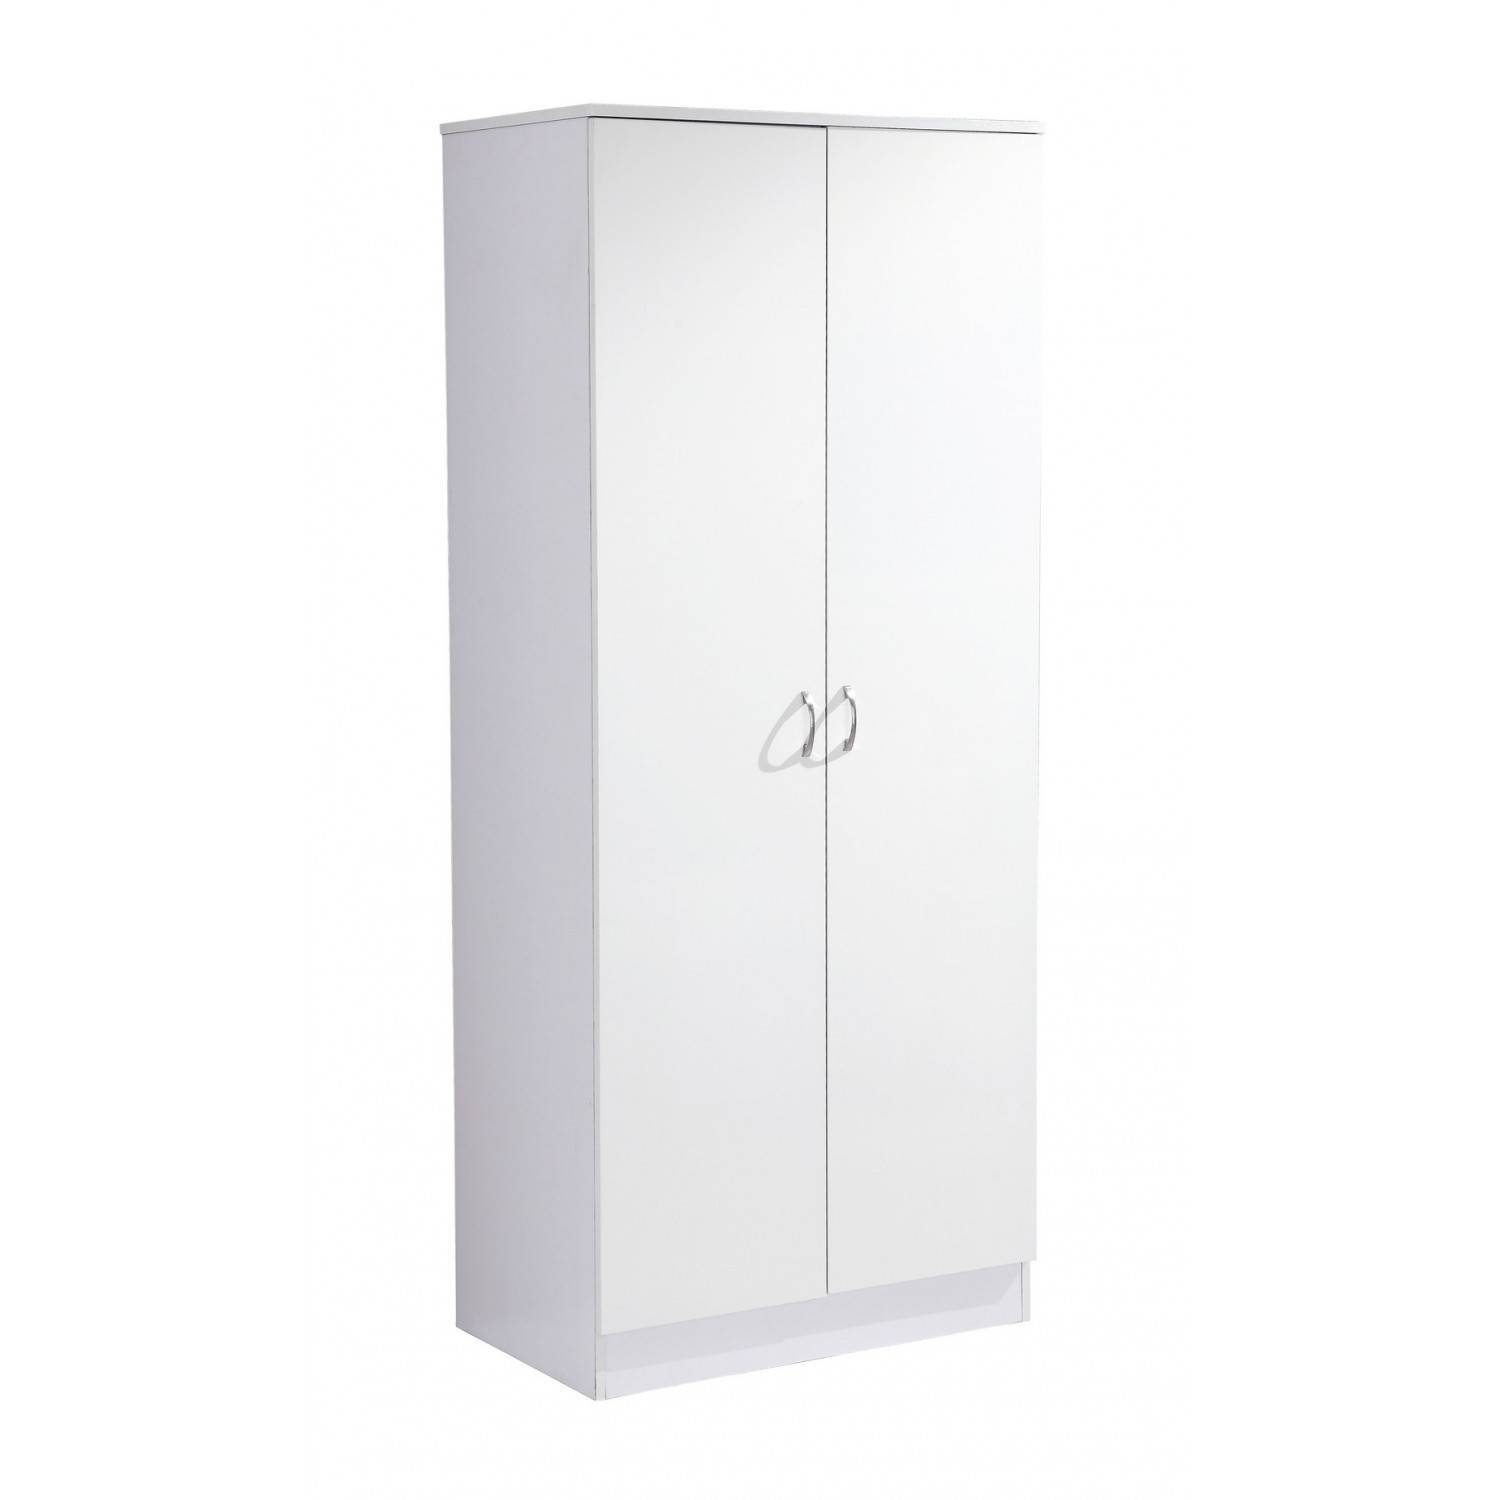 High Gloss Two Door Wardrobe In White On White intended for Two Door White Wardrobes (Image 4 of 15)